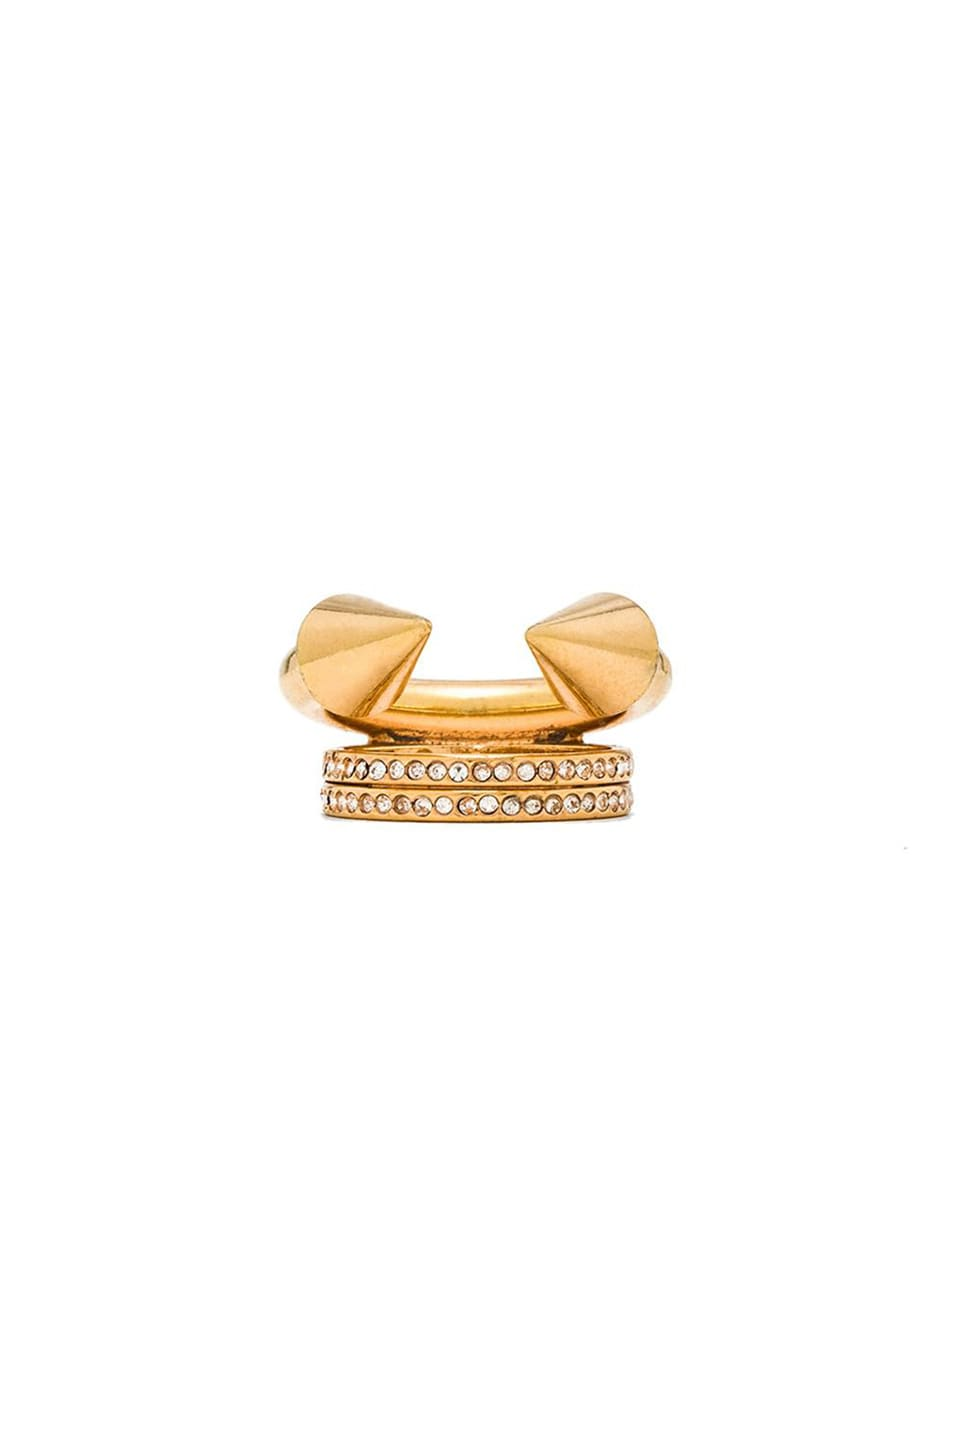 Vita Fede Titan Plain and Double Crystal Ring in Gold/Clear Crystals